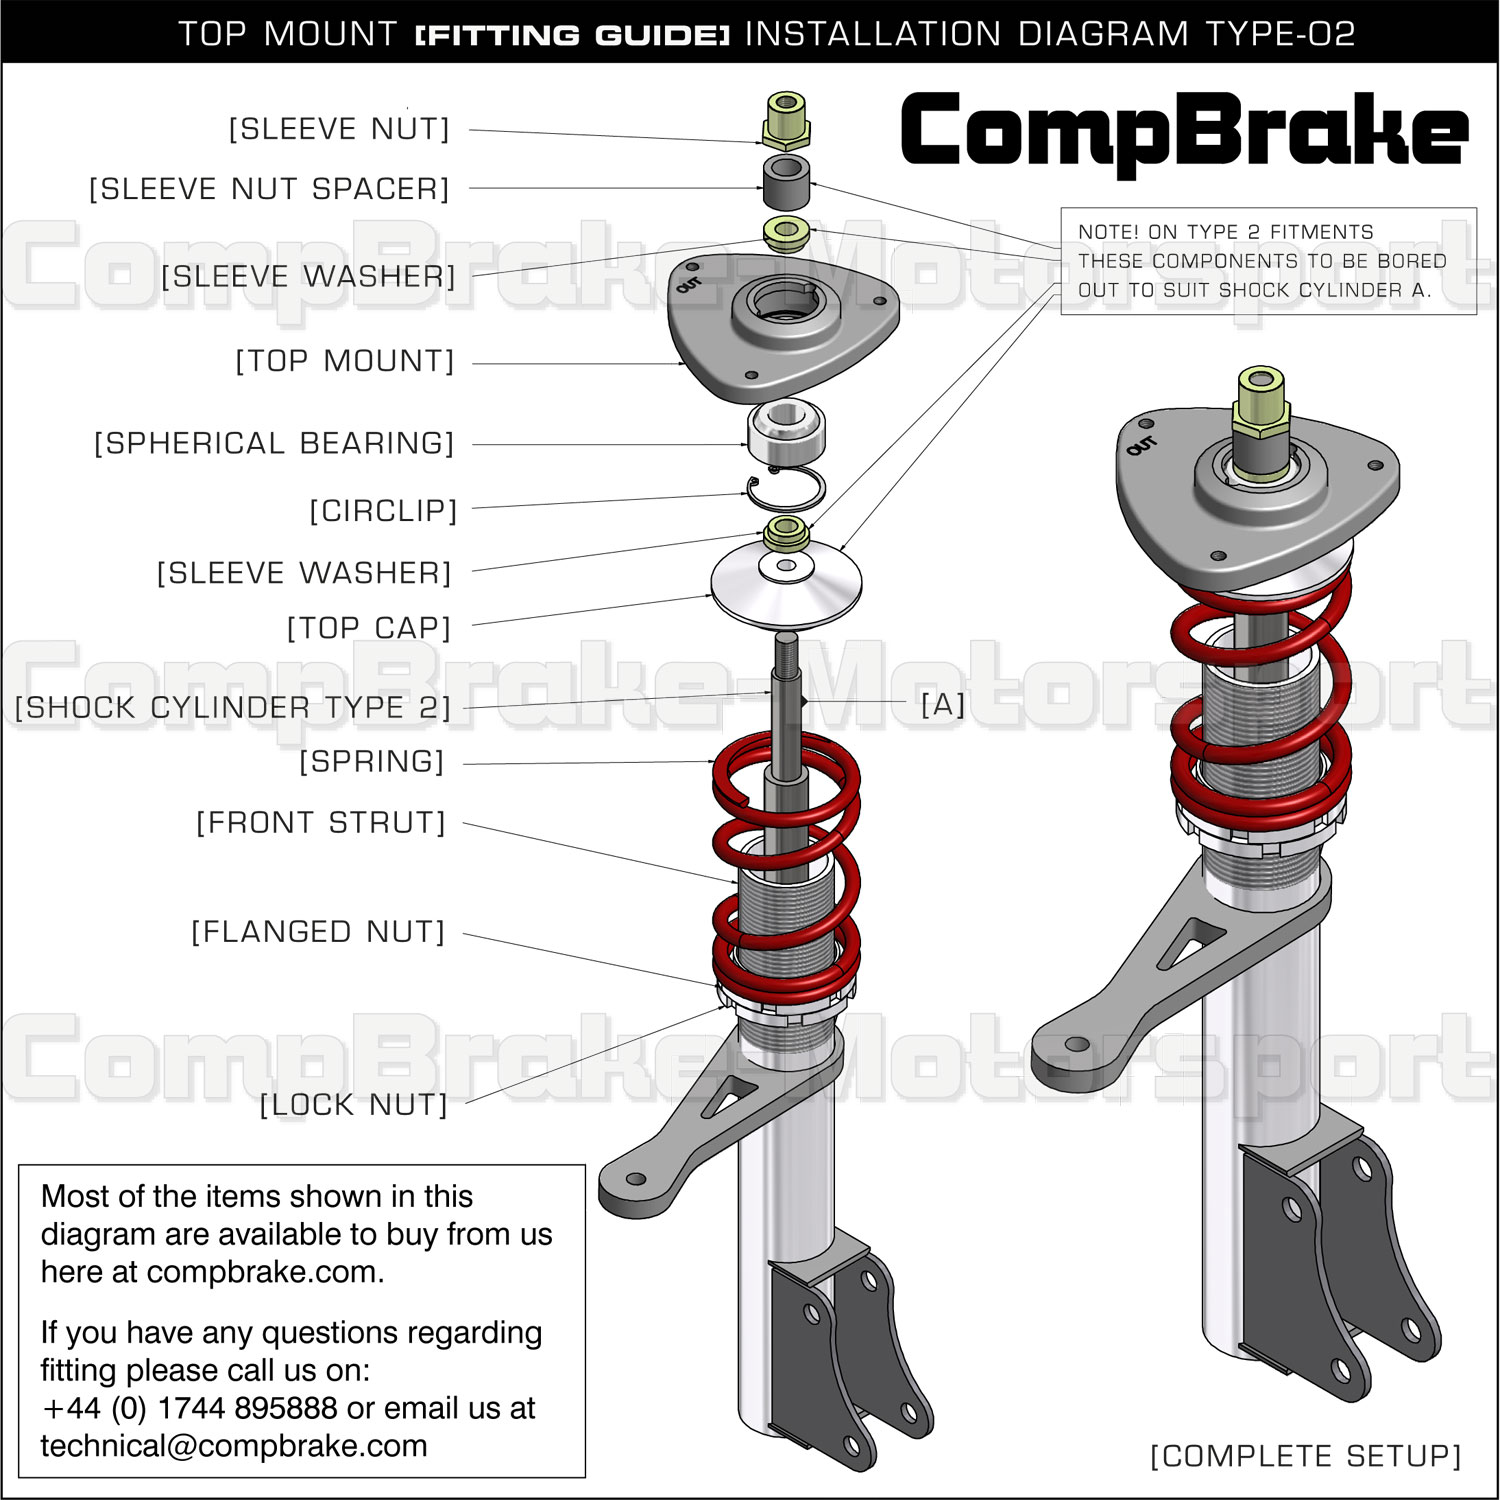 ford fiesta mk6 audio wiring diagram driving lights hilux mk4 5 front fixed suspension top mount pair mounts www compbrake com